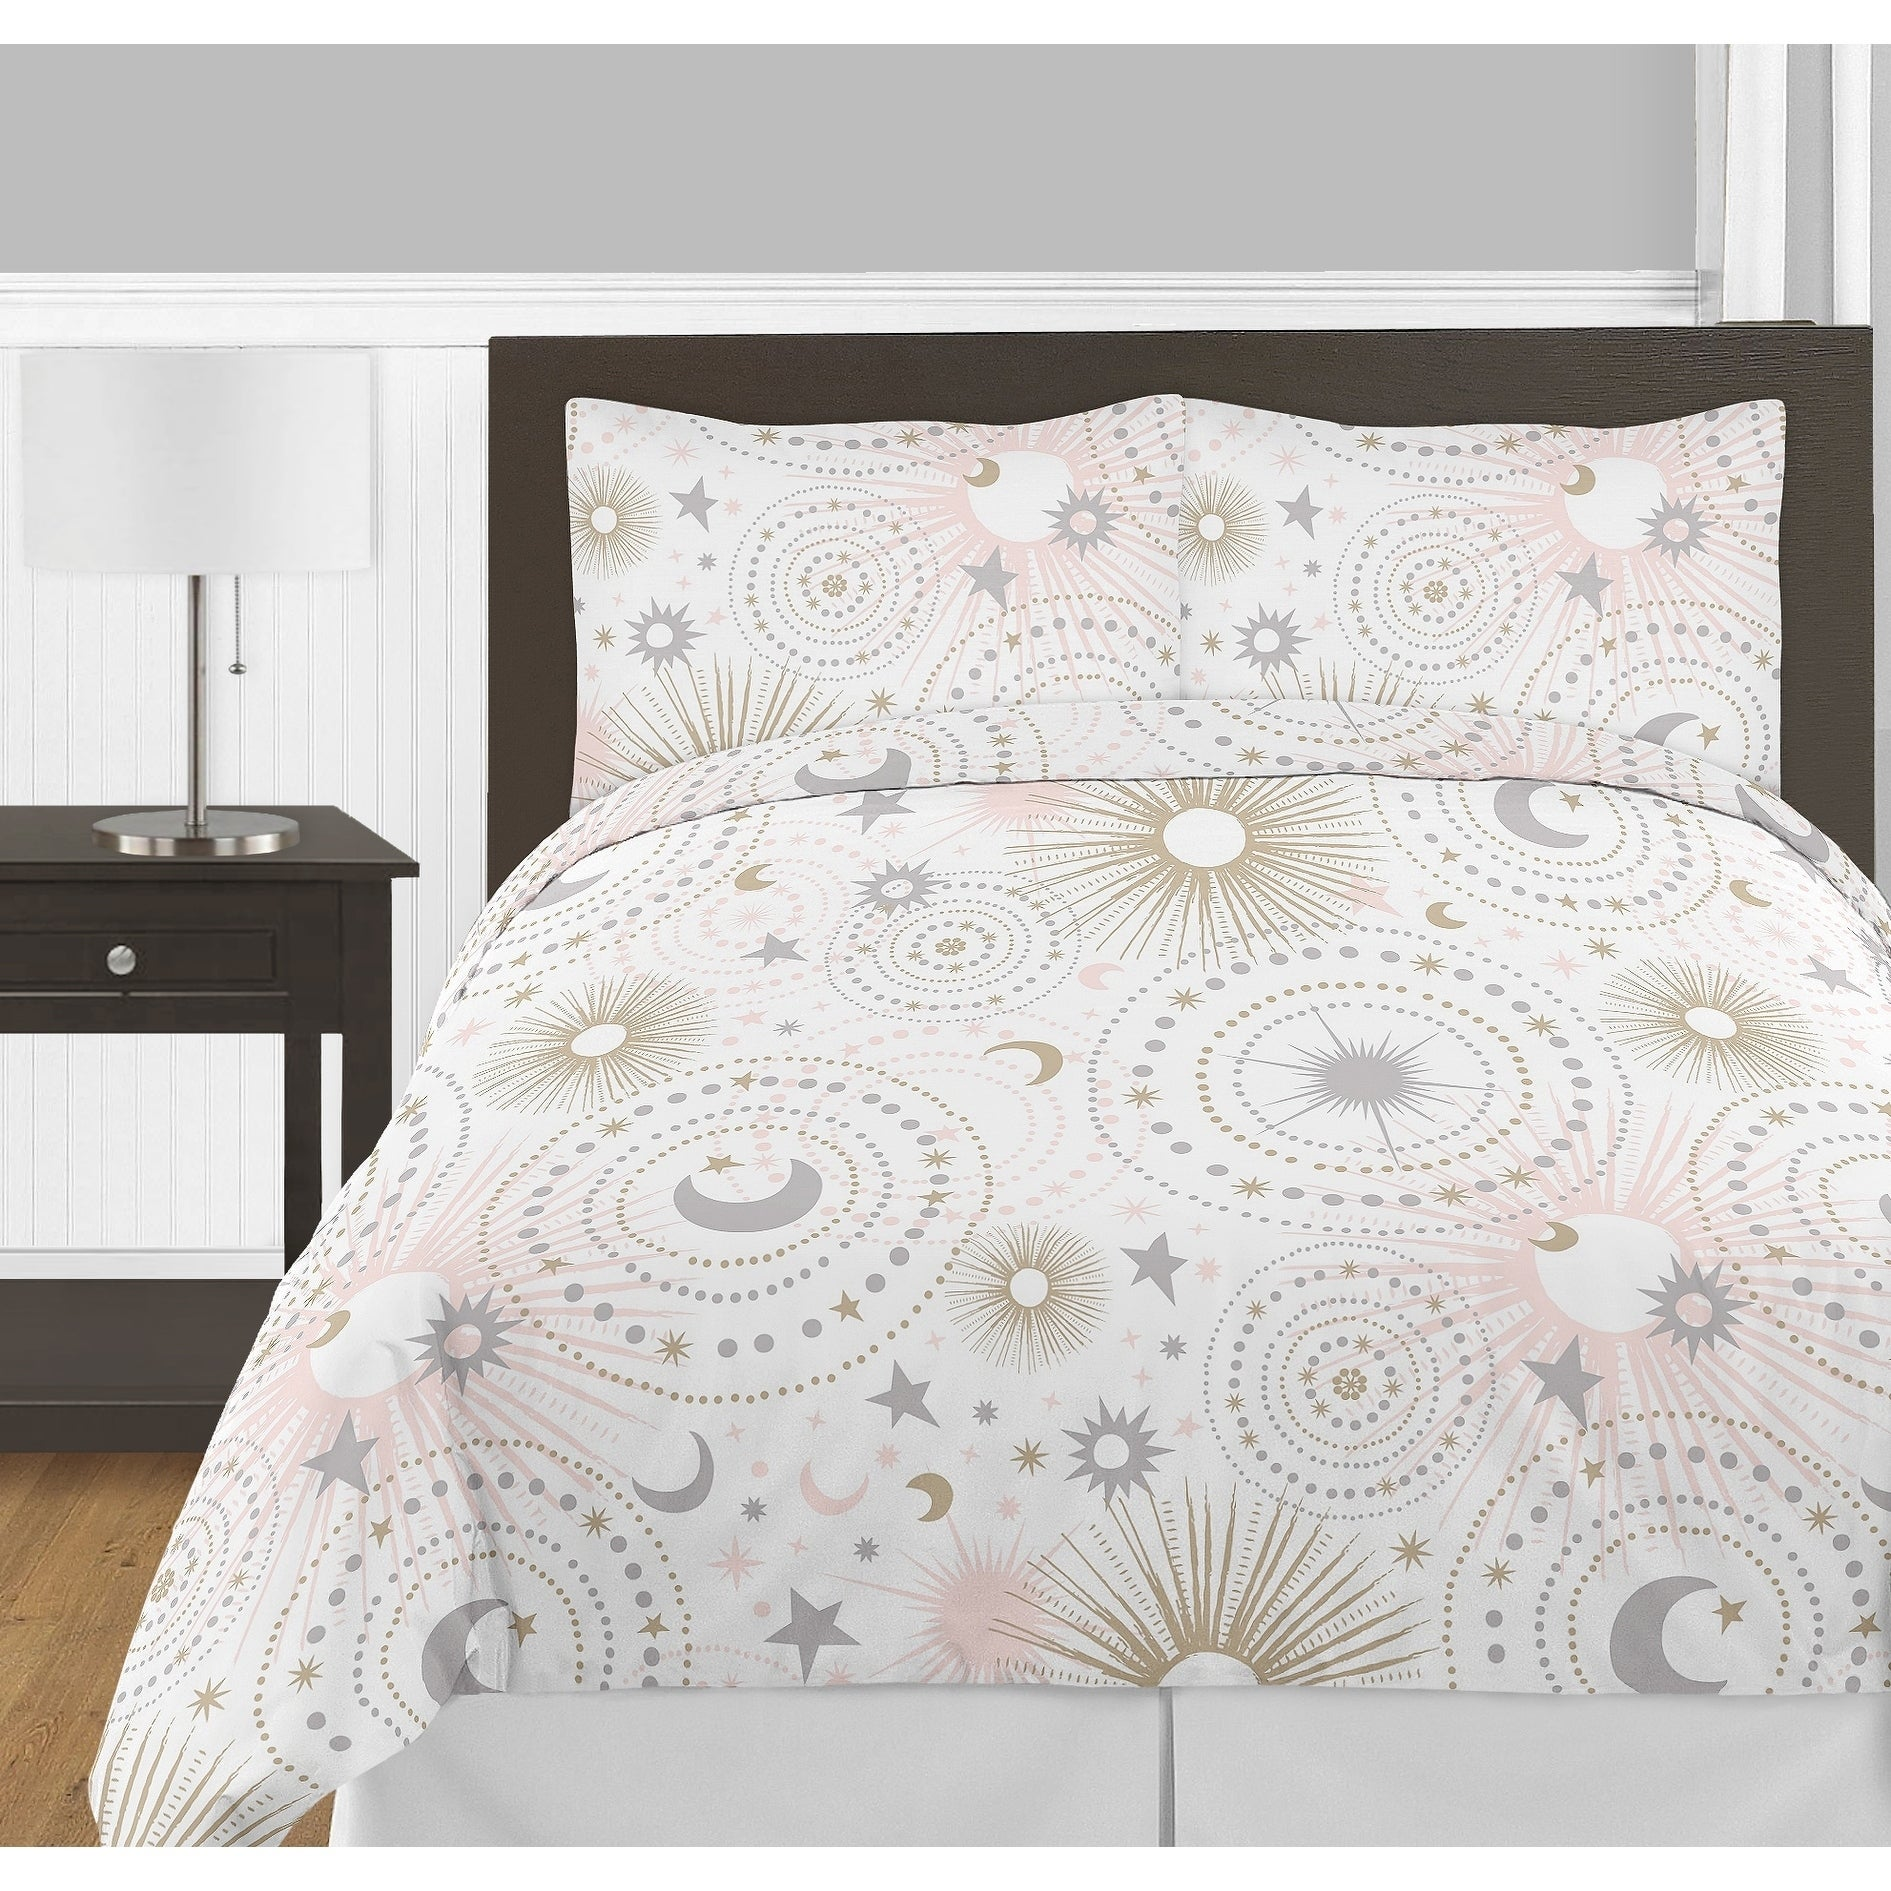 new white modern arrival sheets comforter bed star b bedding sun and celestial vie font moon